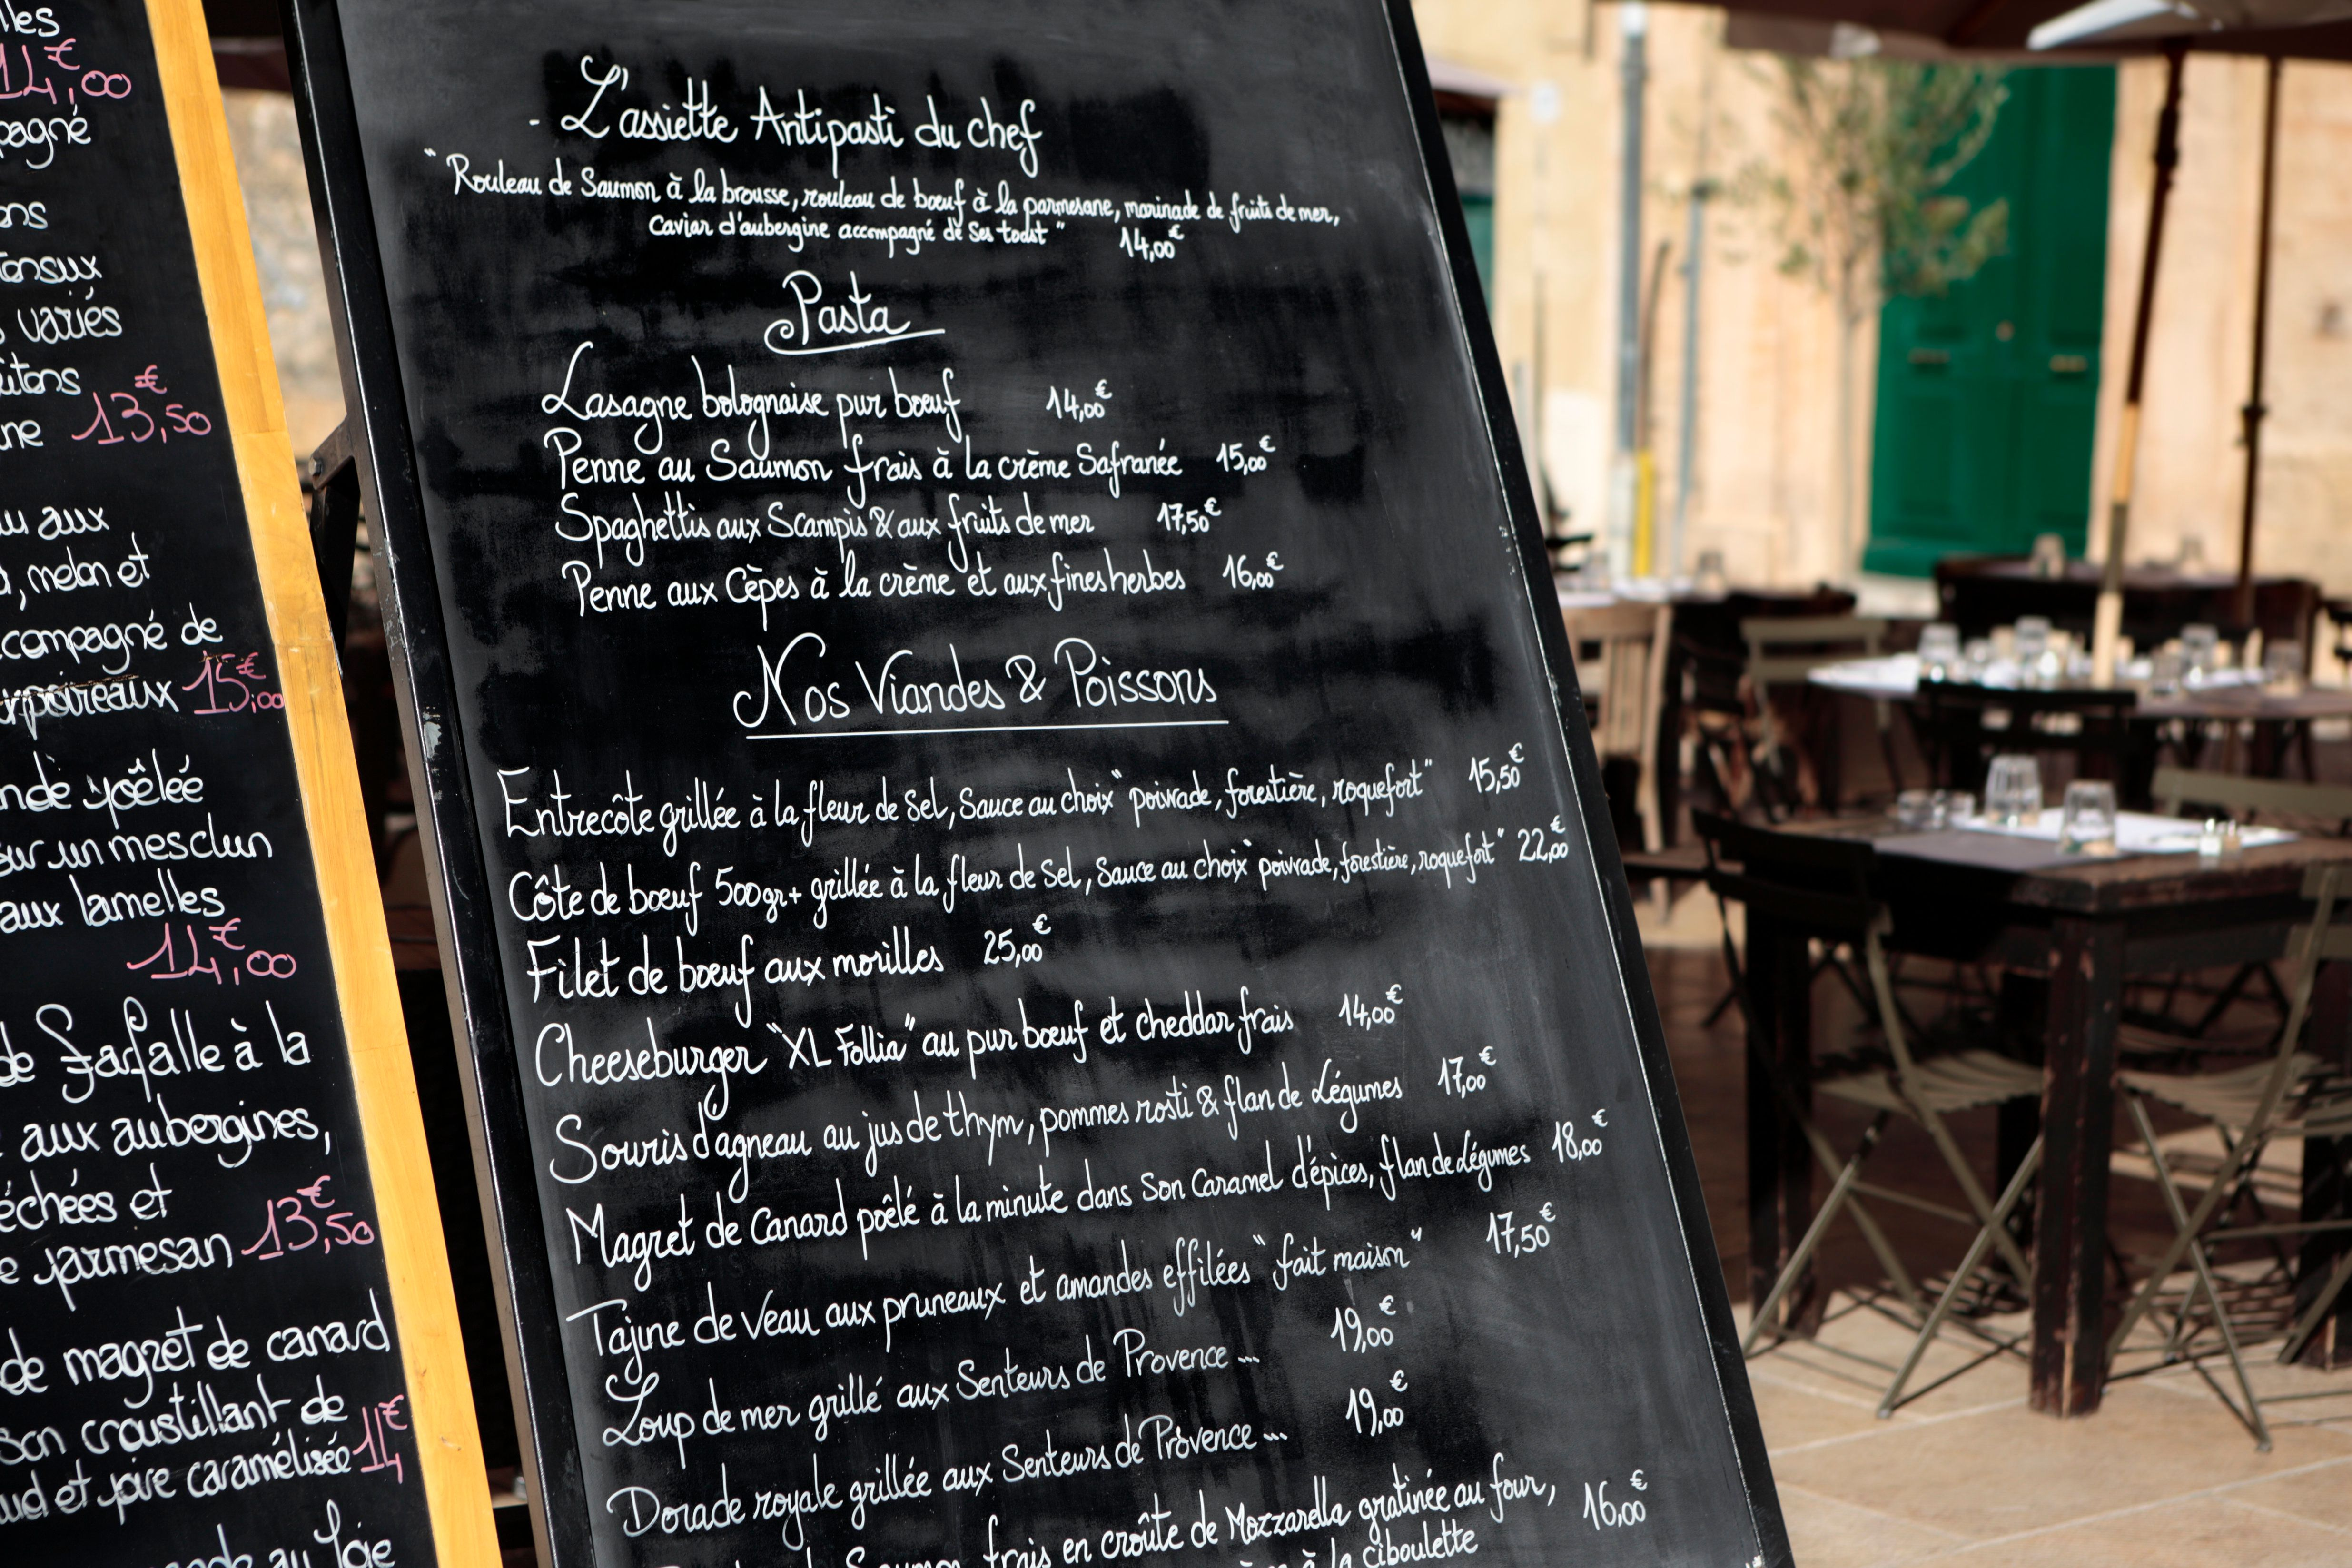 Restaurant in France with menus.  Focus on the menus with tables and chairs in the background blurred.You might also like this atmospheric cafe scene: